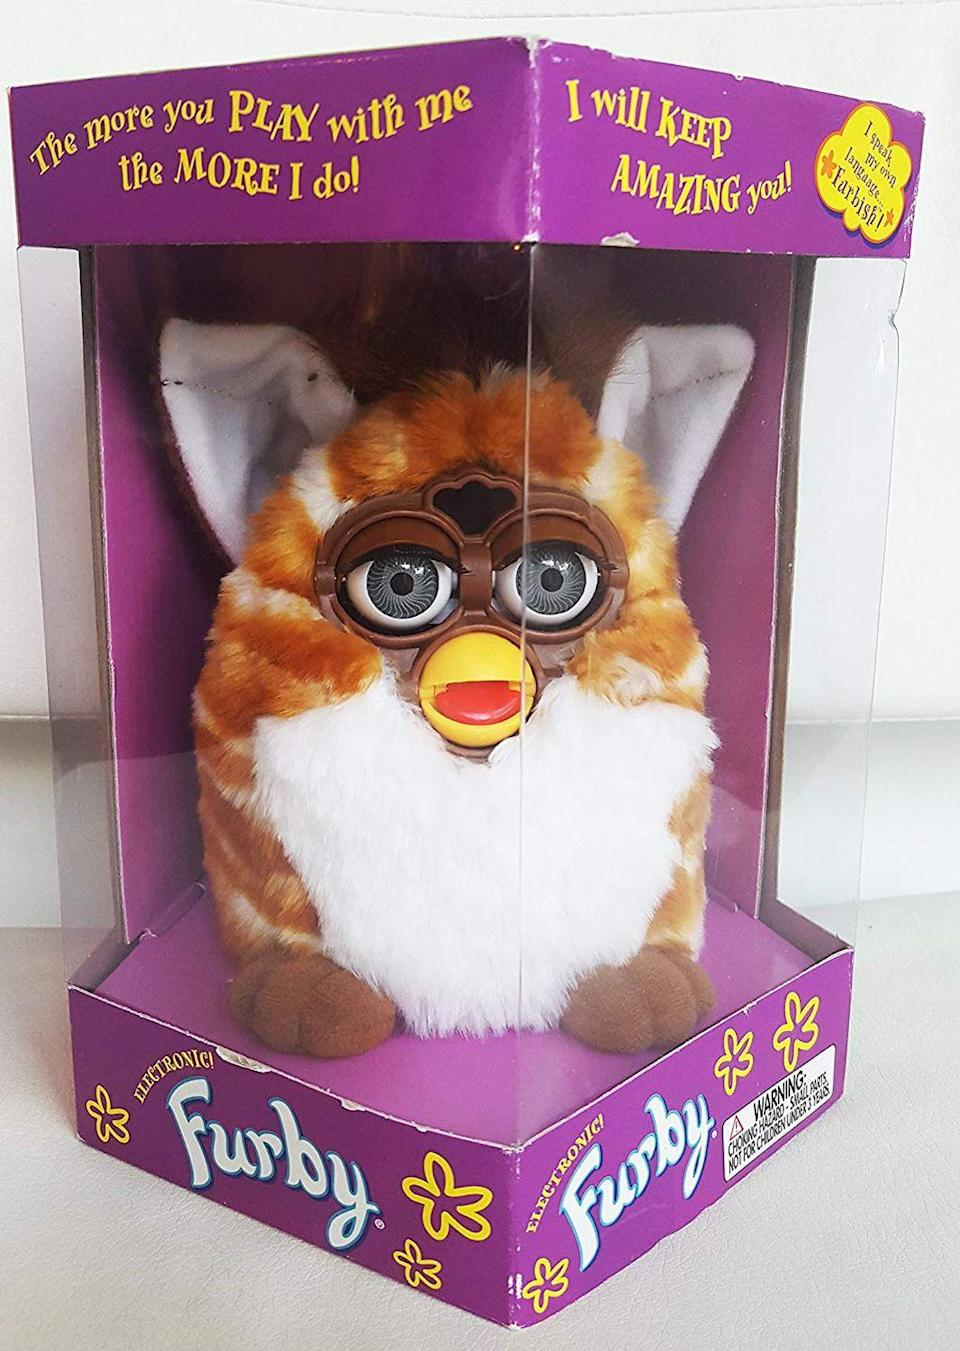 """<p>Furby was one of the most annoying toys to come out of the '90s, and in a cruel twist of fate, they're now somehow worth almost <a href=""""https://www.ebay.com/itm/NIB-1998-ORIGINAL-FURBY-70-800-Gray-Black-Spots-Pink-Belly-Ear-BOX-damage-BG/292910661368?epid=19033158937&hash=item4432d5fef8:g:q6UAAOSwCEhcNXQx:sc:USPSPriority!11231!US!-1"""" rel=""""nofollow noopener"""" target=""""_blank"""" data-ylk=""""slk:$1k"""" class=""""link rapid-noclick-resp"""">$1k</a>. Like...why would anyone buy this? I NEED ANSWERS. </p>"""